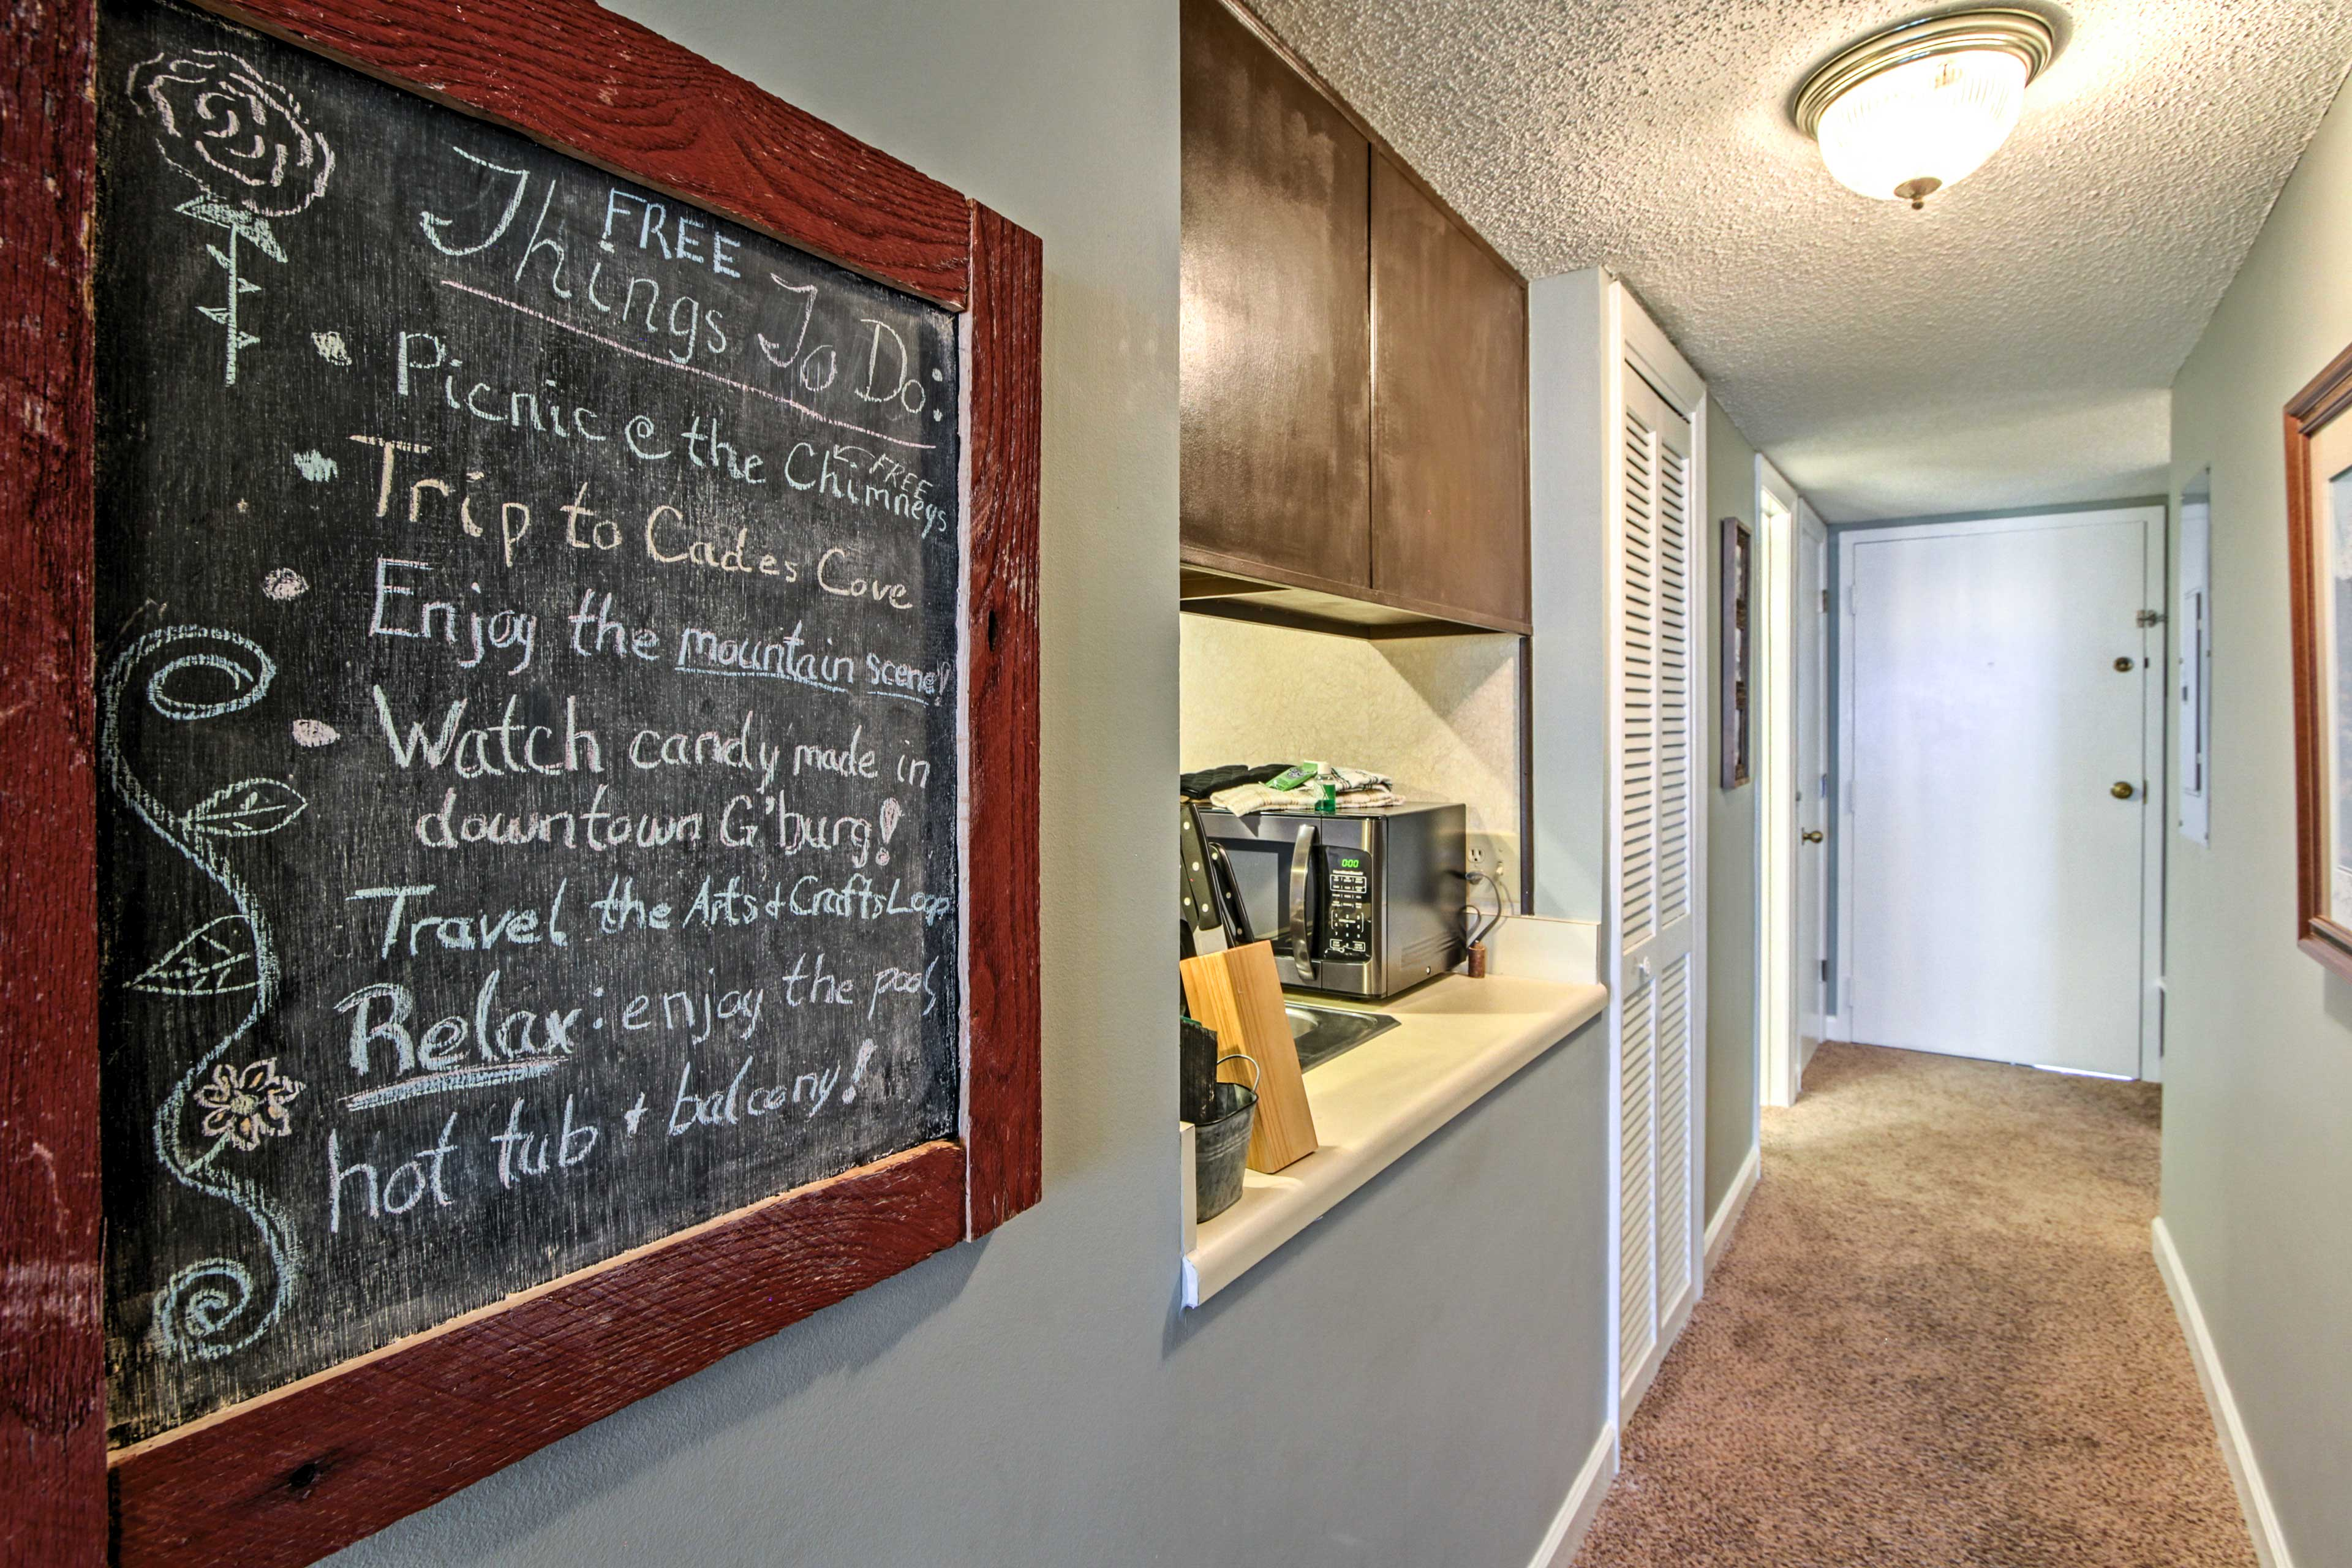 This condo also provides a list of budget-friendly attractions in the area.